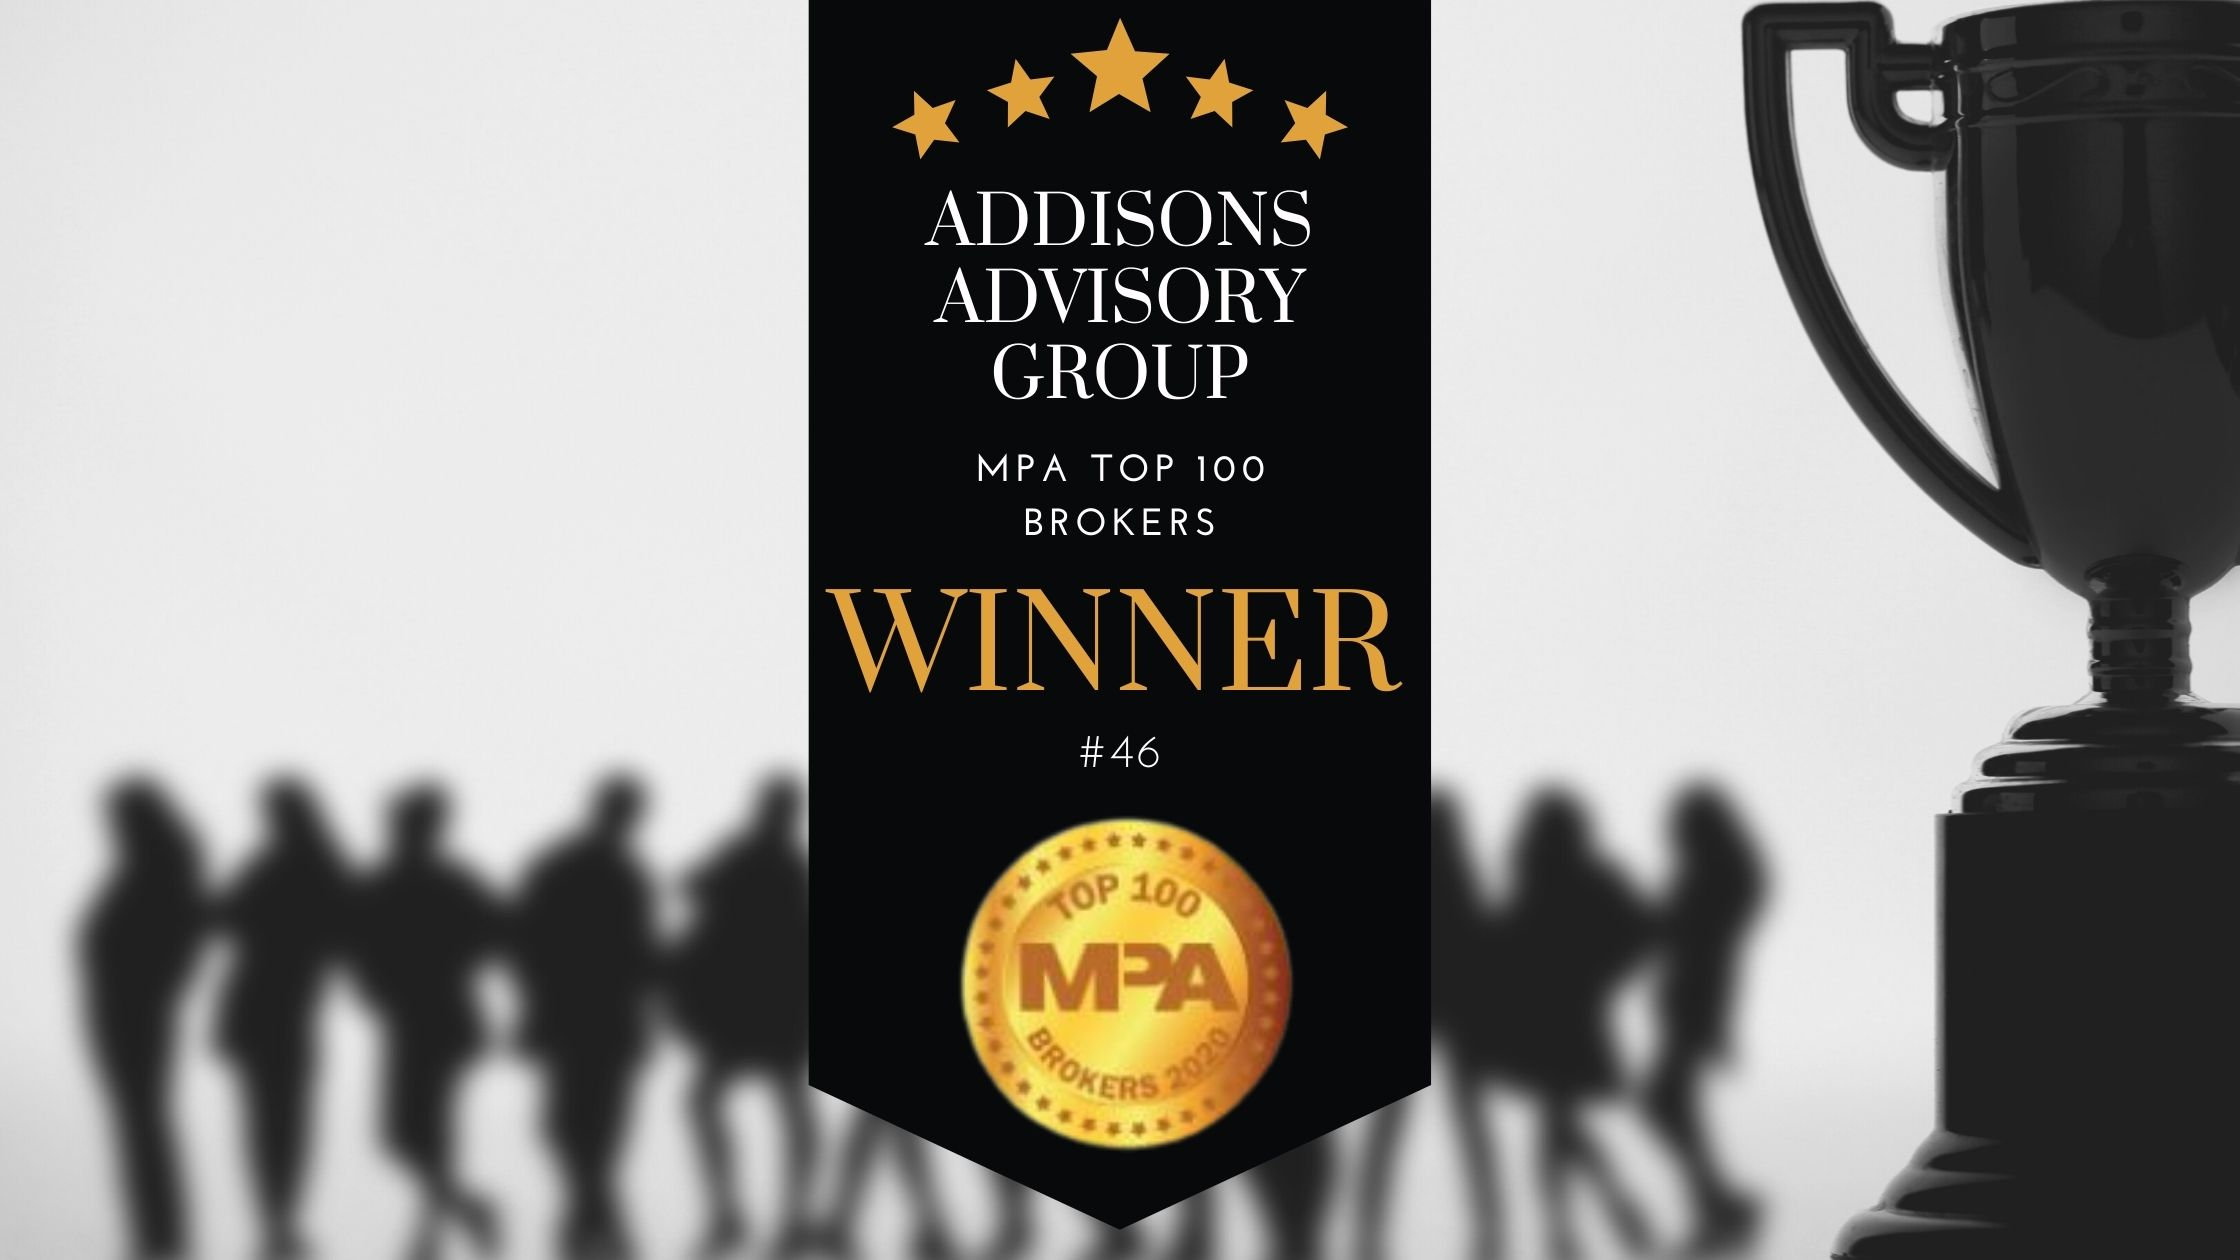 Addisons amongst the top 50 brokers nationally